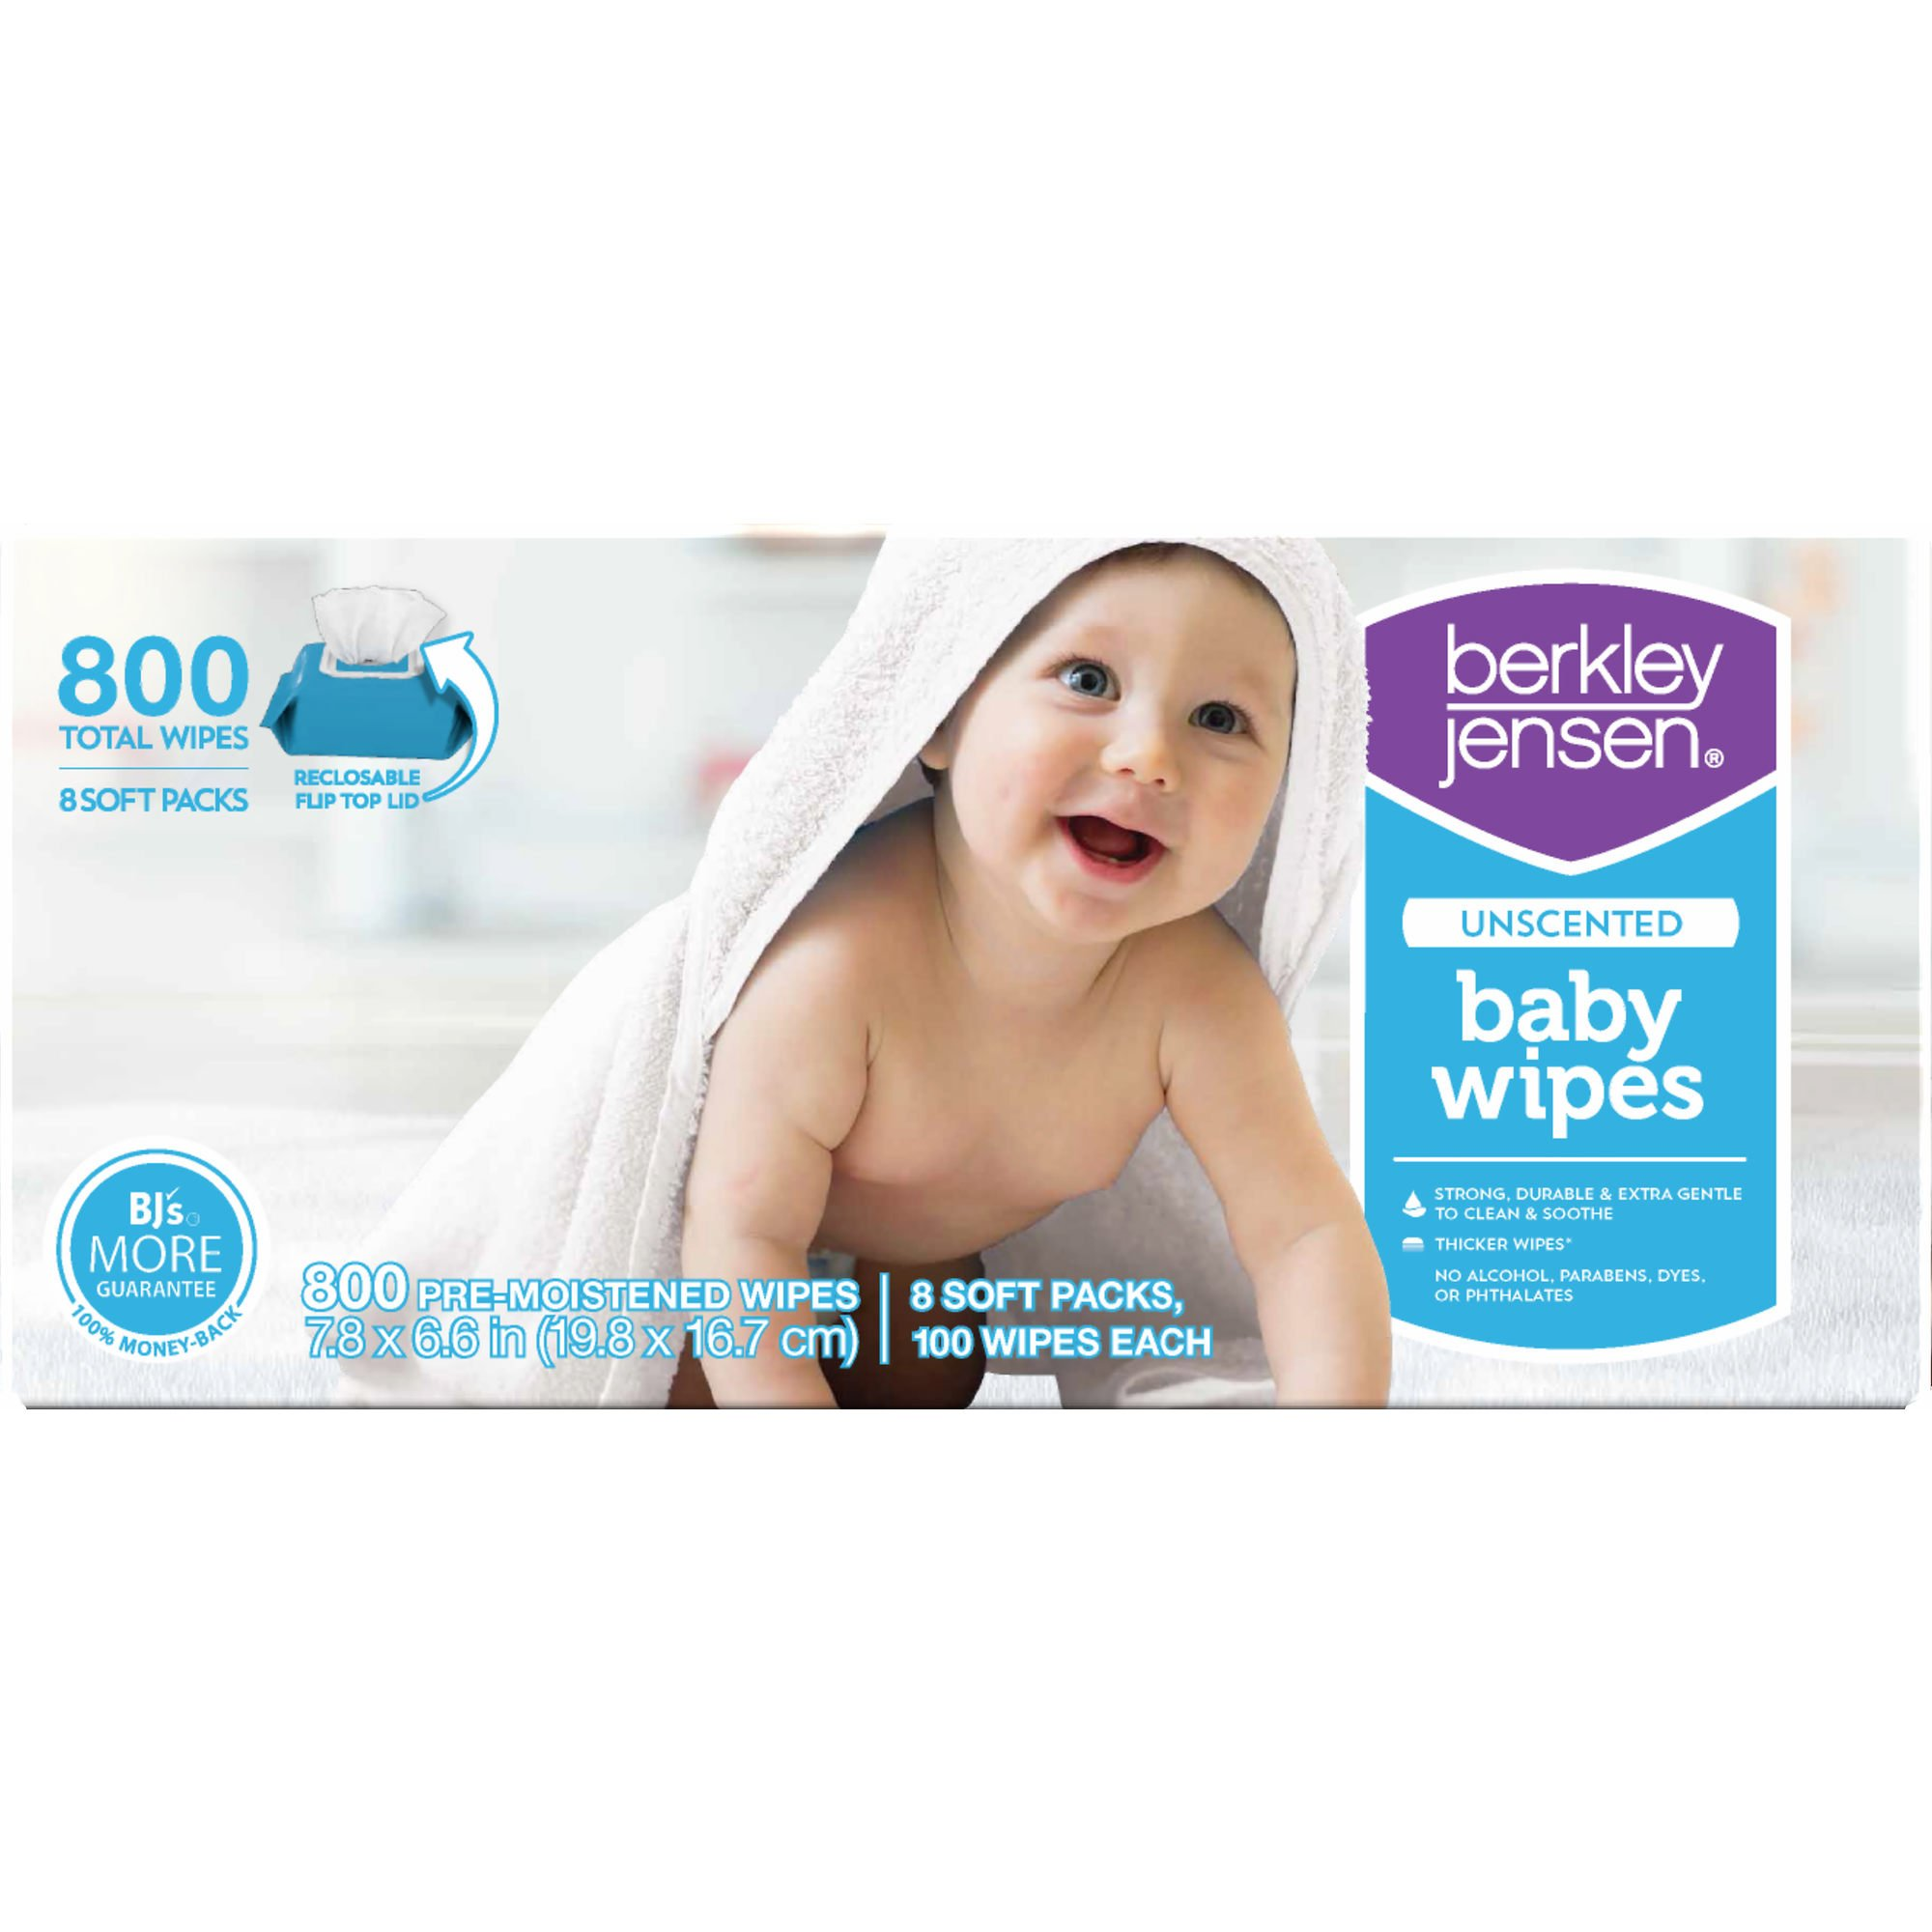 Berkley Jensen Unscented Baby Wipes, 800 ct.